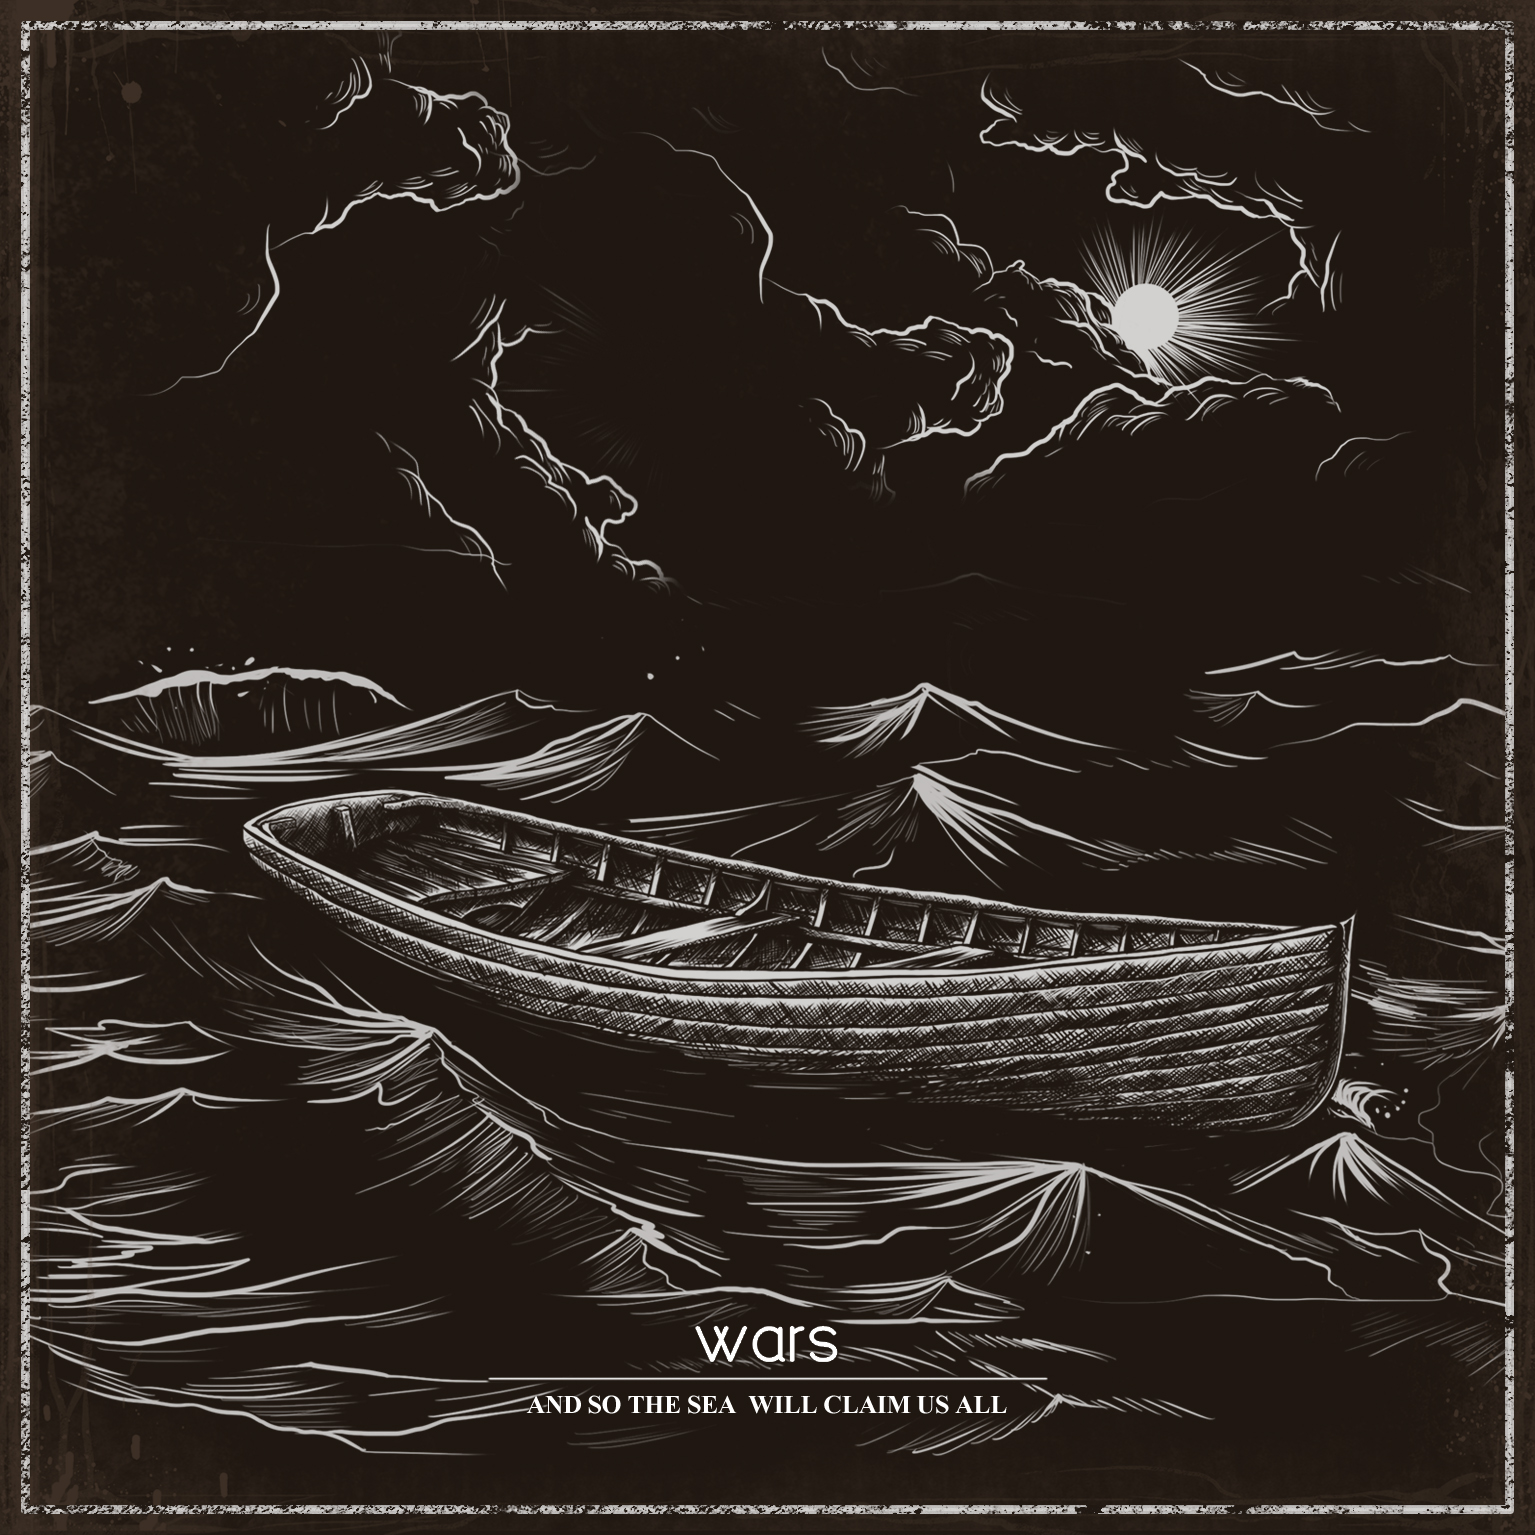 wars - And So The Sea Will Claim Us All